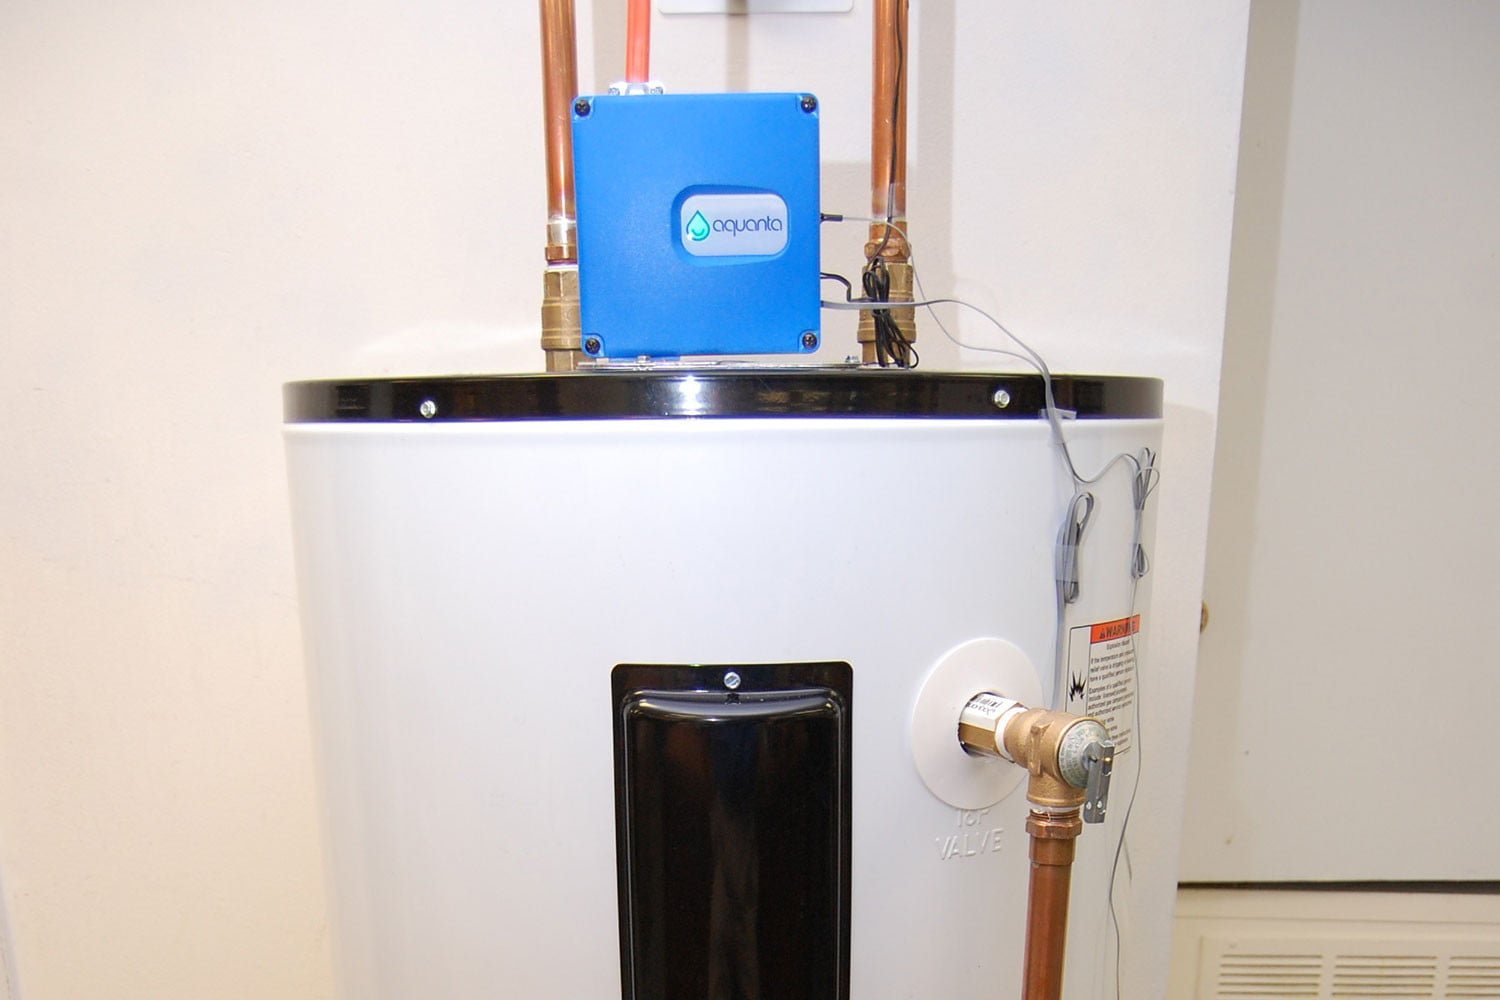 The Aquanta Is A Retrofittable Hot Water Controller Digital Trends Testing Thermostats On Electric Heaters Full Tank View